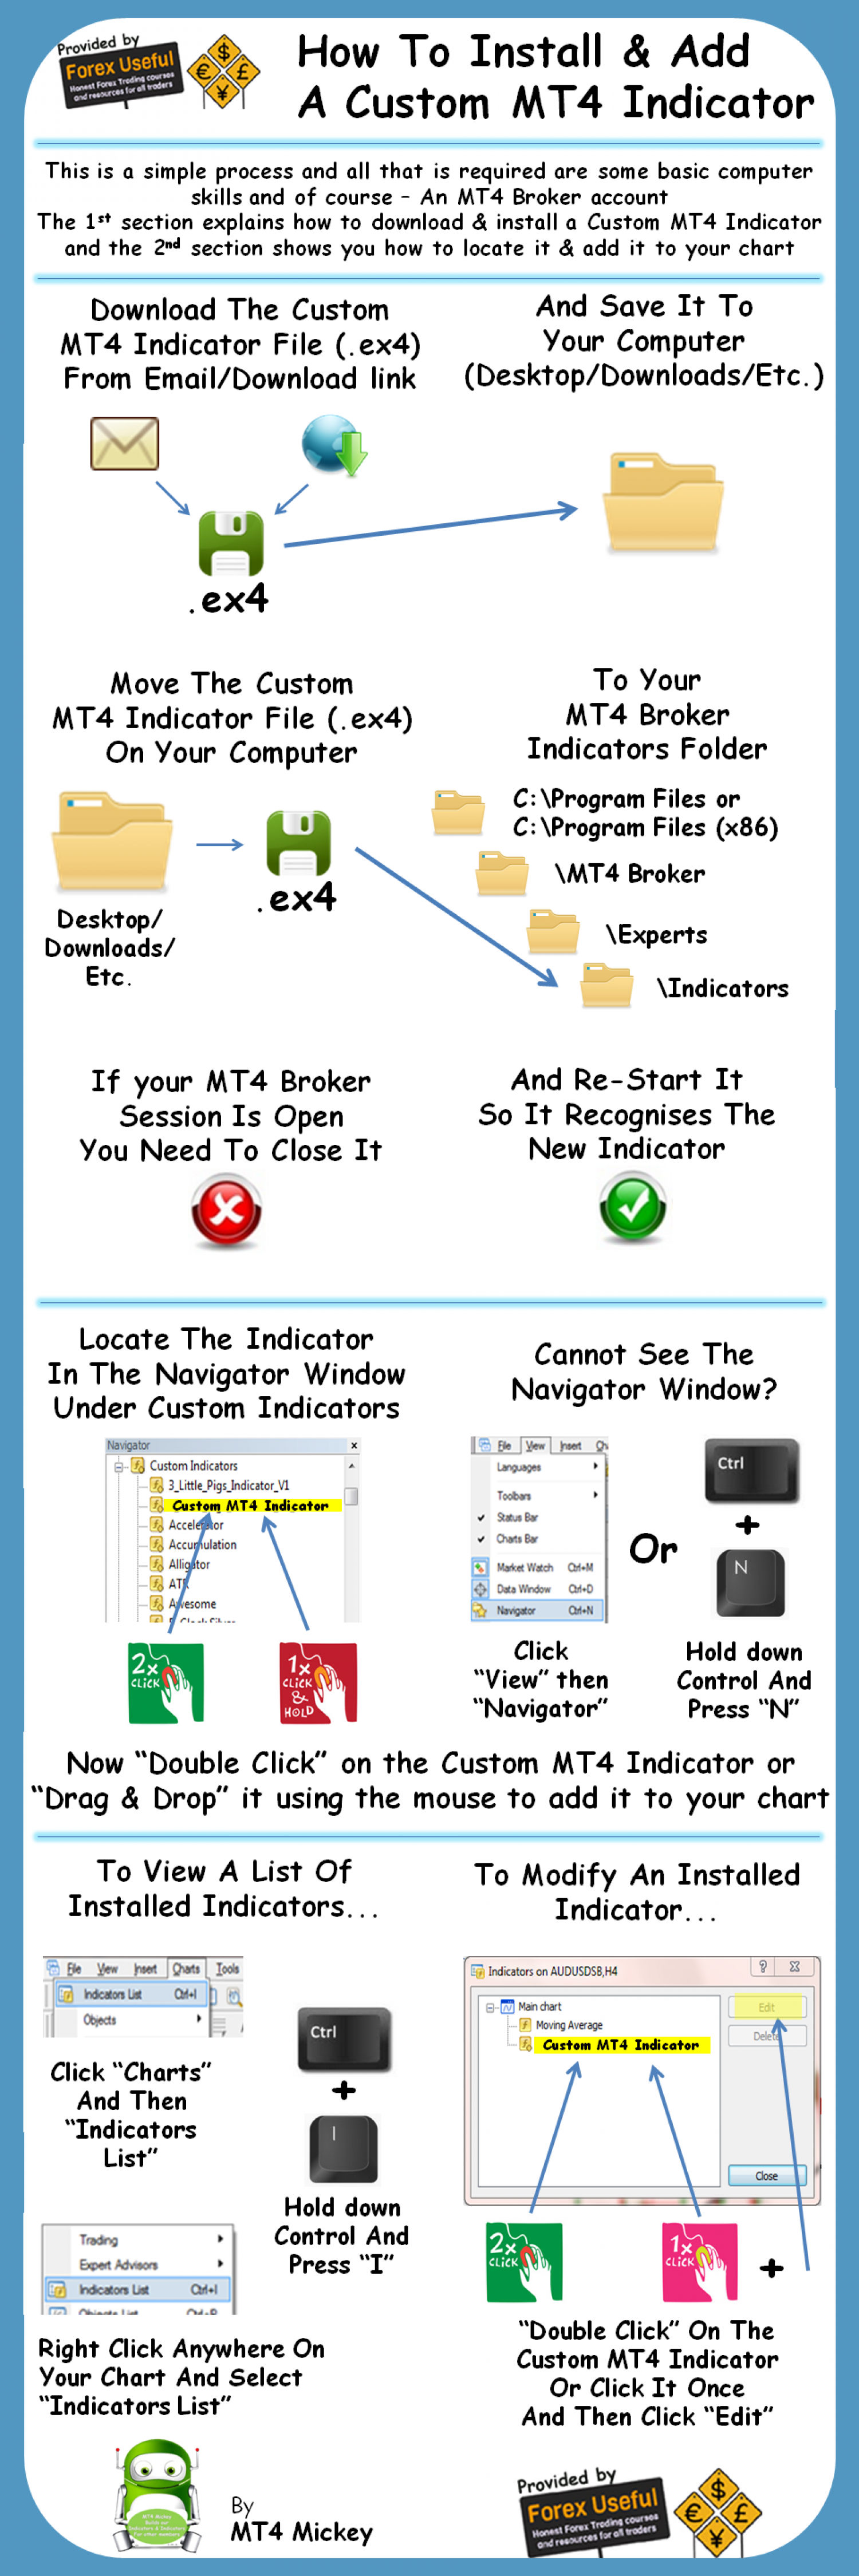 How To Install And Add A Custom MT4 Indicator Infographic